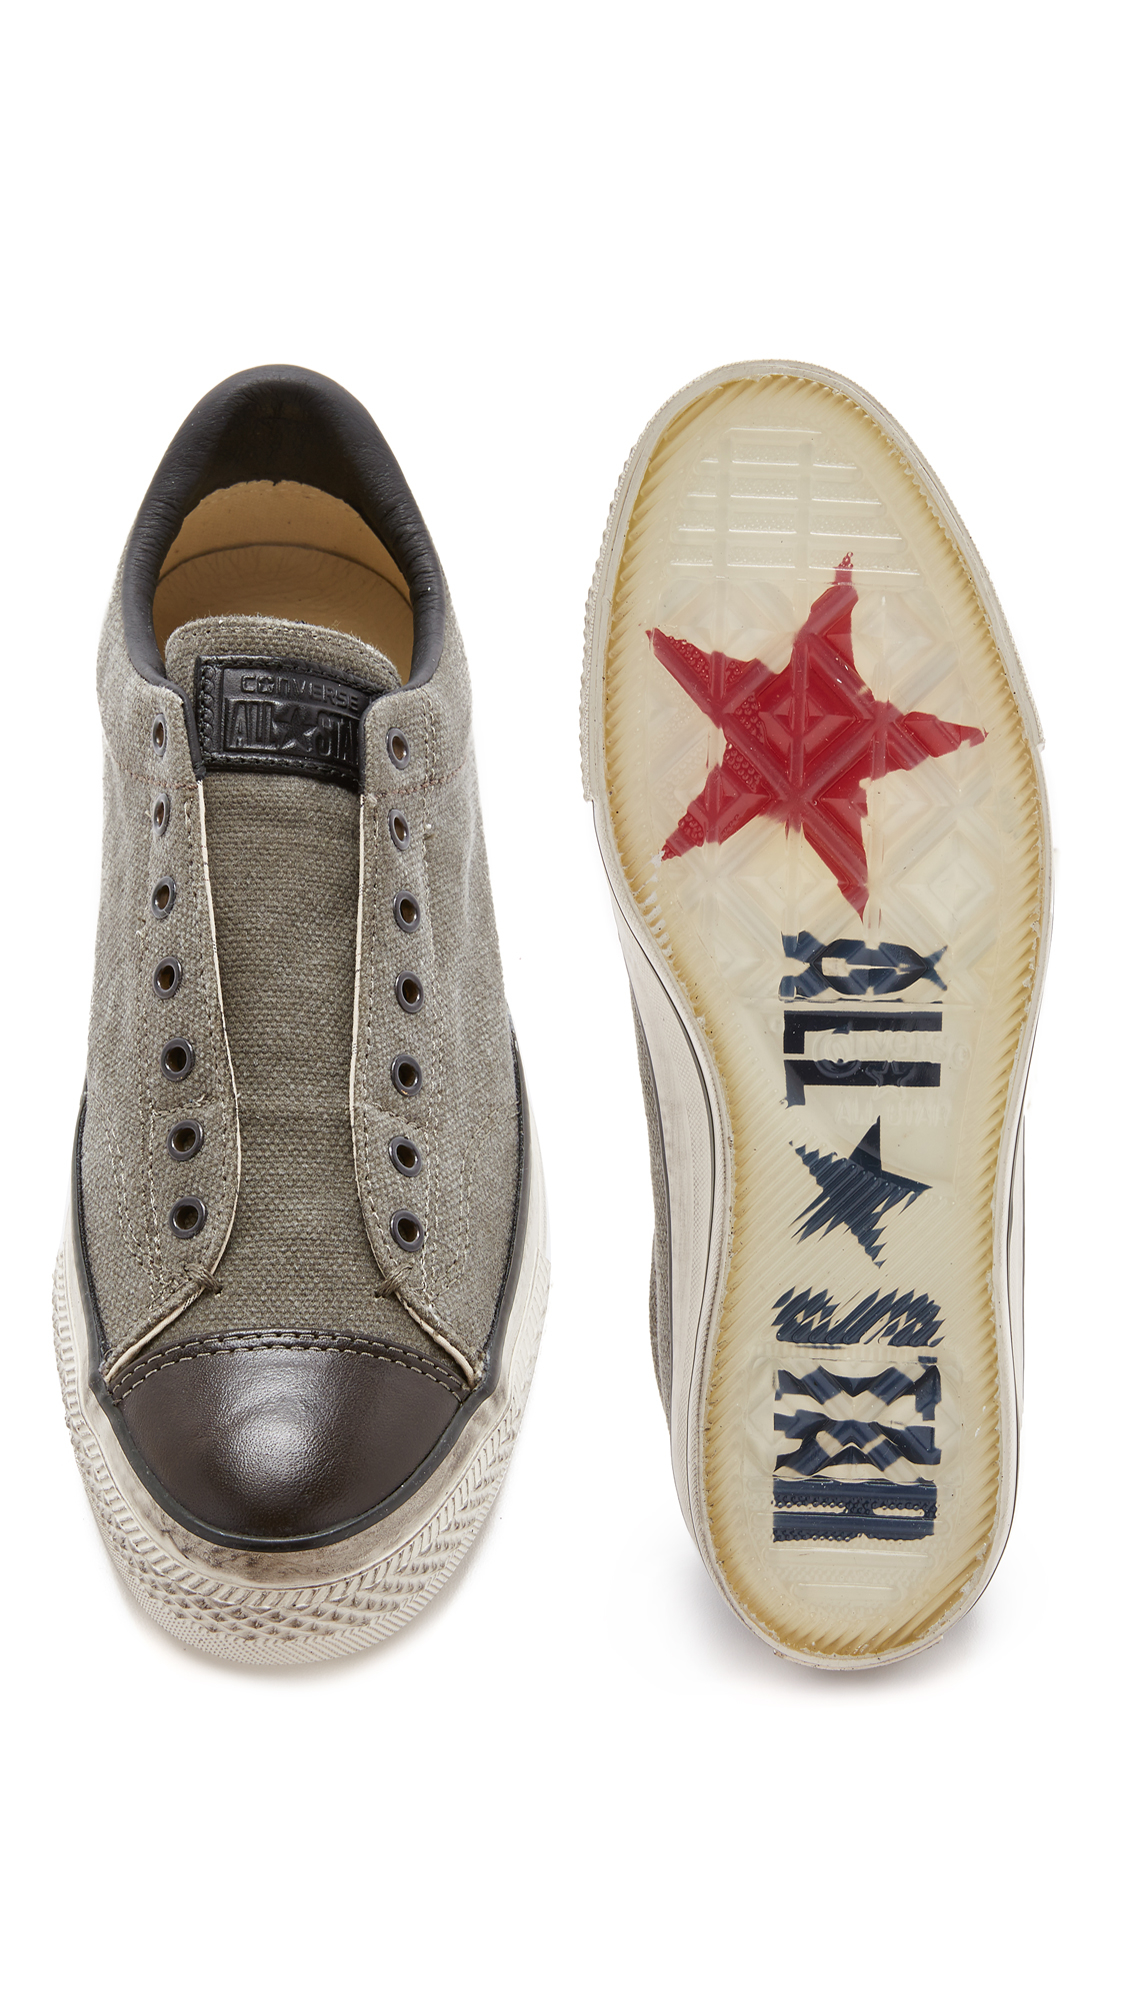 Converse Chuck Taylor All Star Vintage Slip On Sneakers In